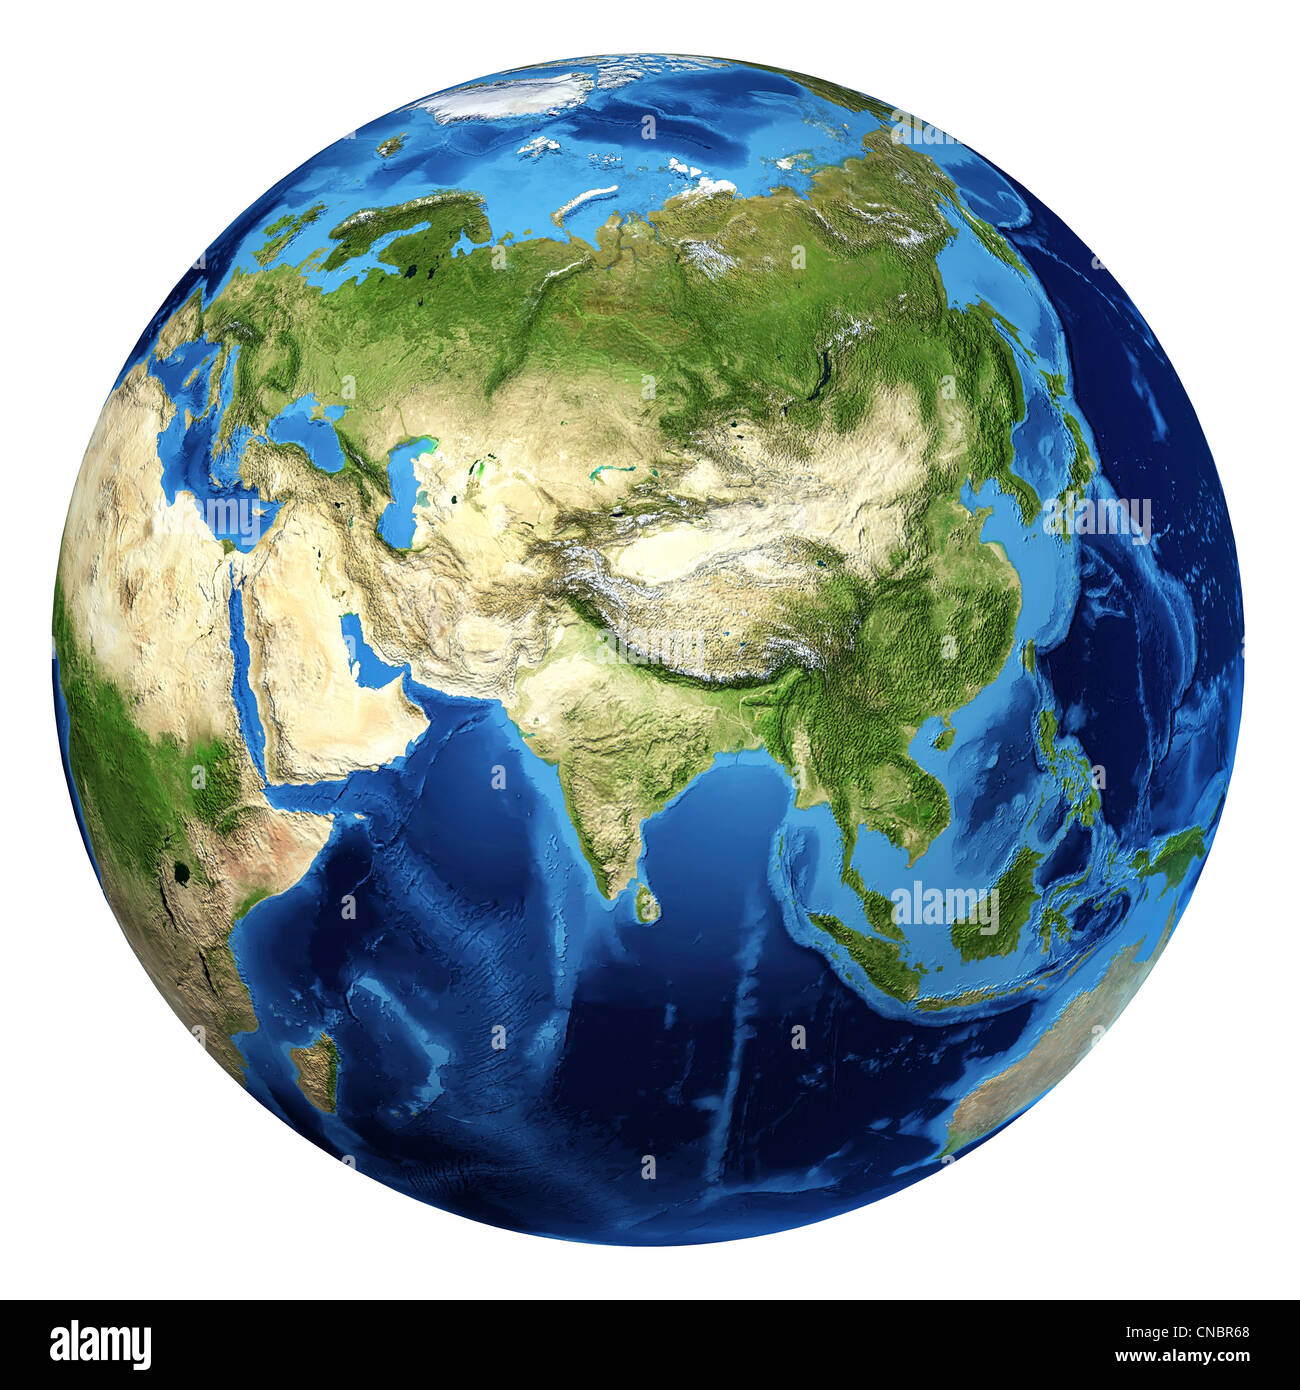 Earth globe, realistic 3 D rendering. Asia view. On white background. - Stock Image